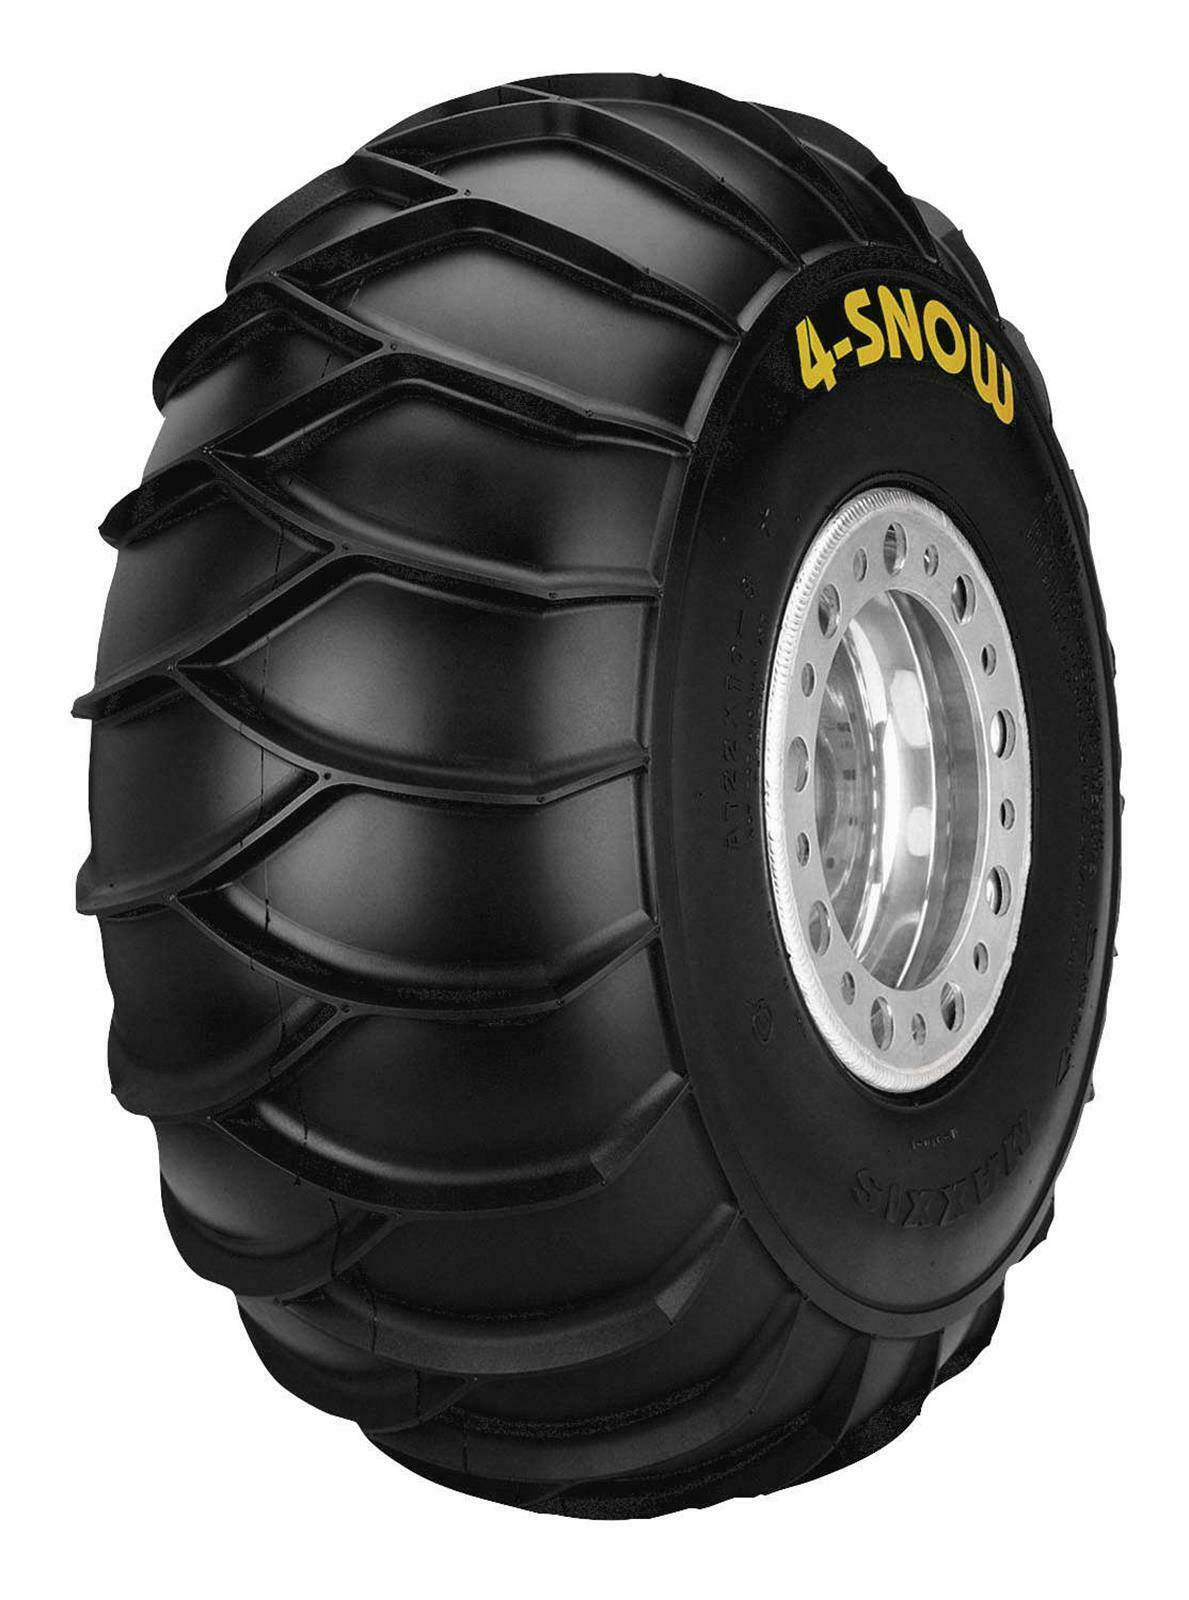 MAXXIS 4-SNOW M910 TIRES TM07306200